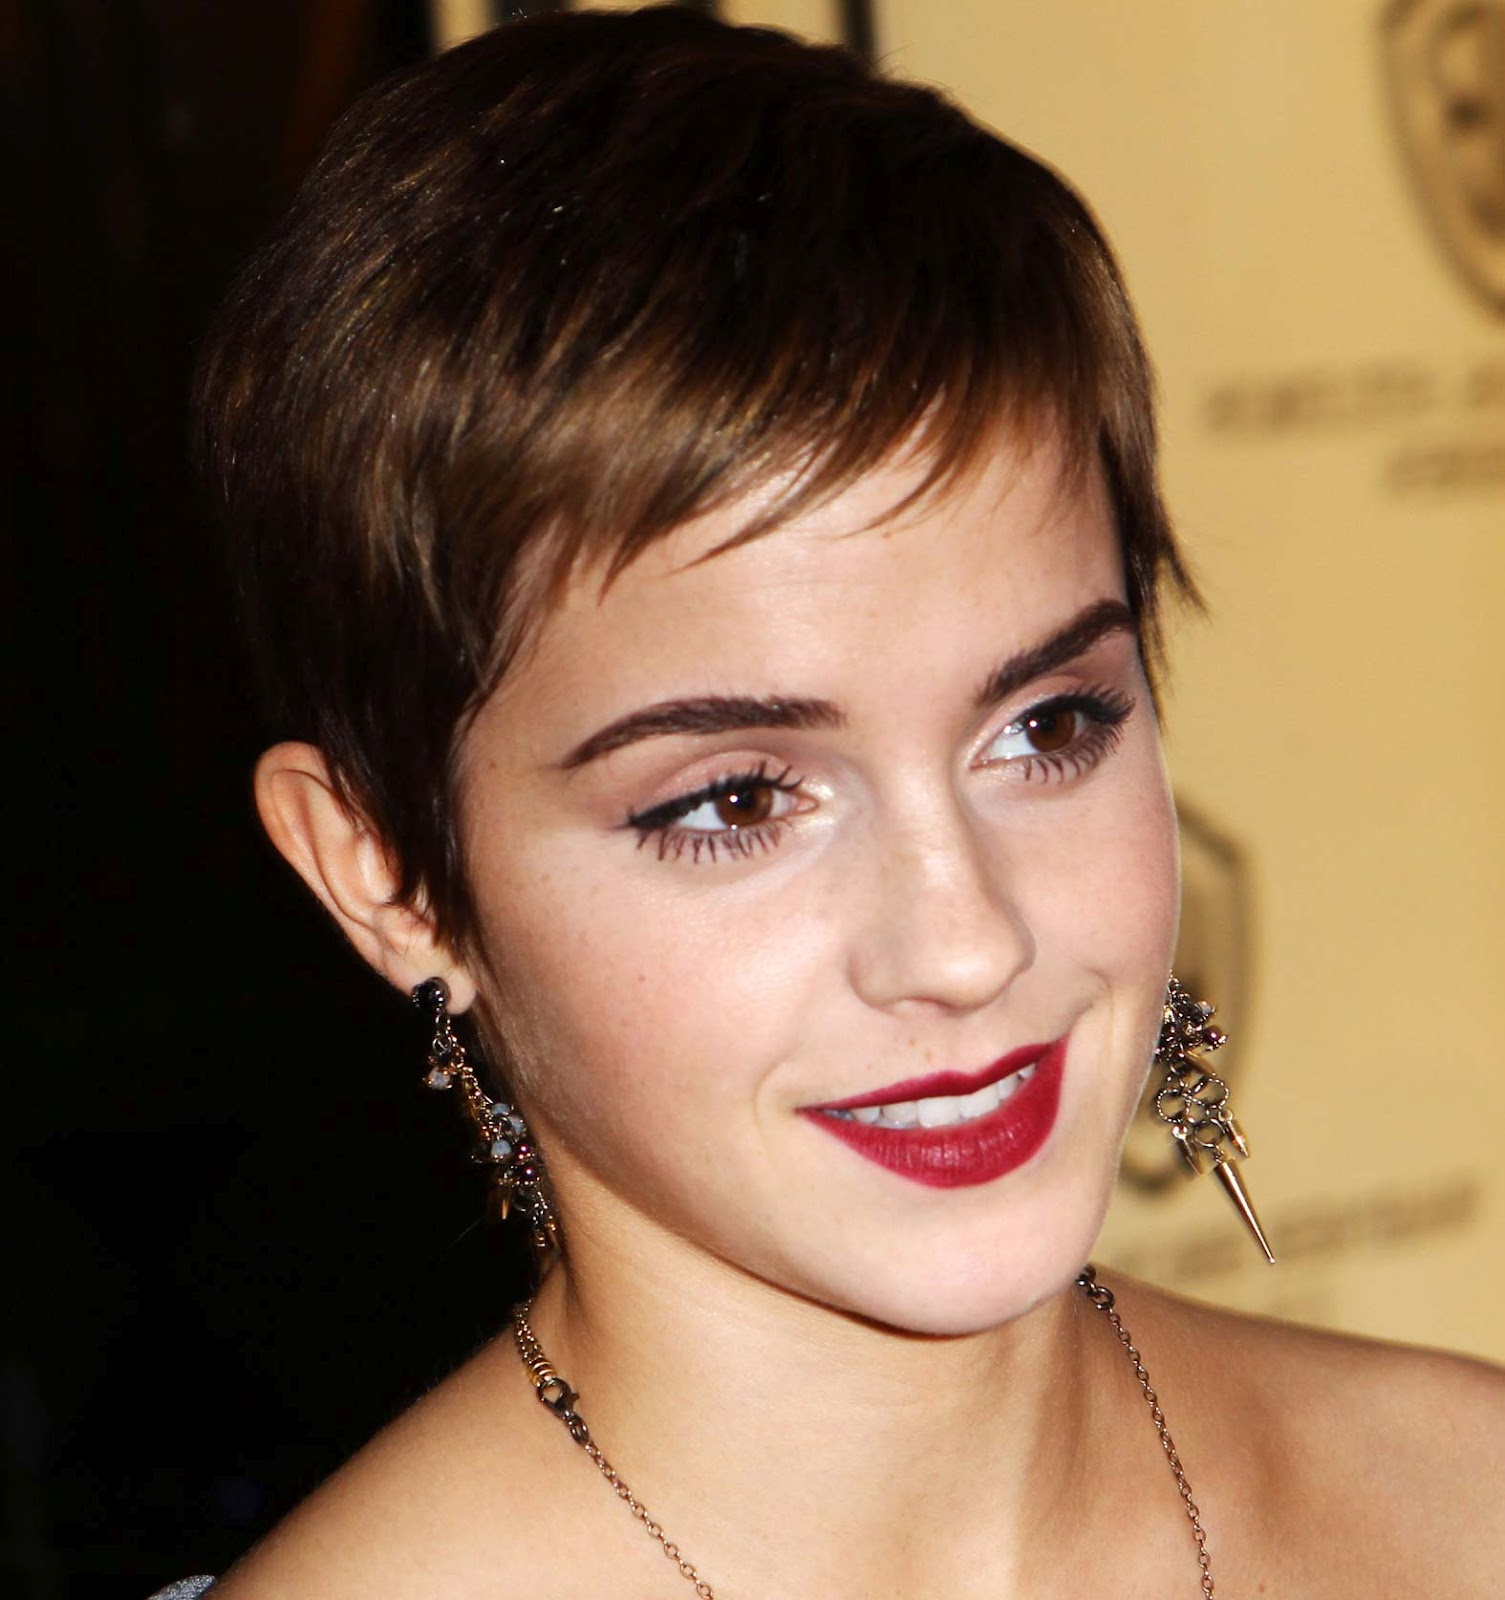 How To Pretend You Arent Ugly Poll 1 Pixie Cuts